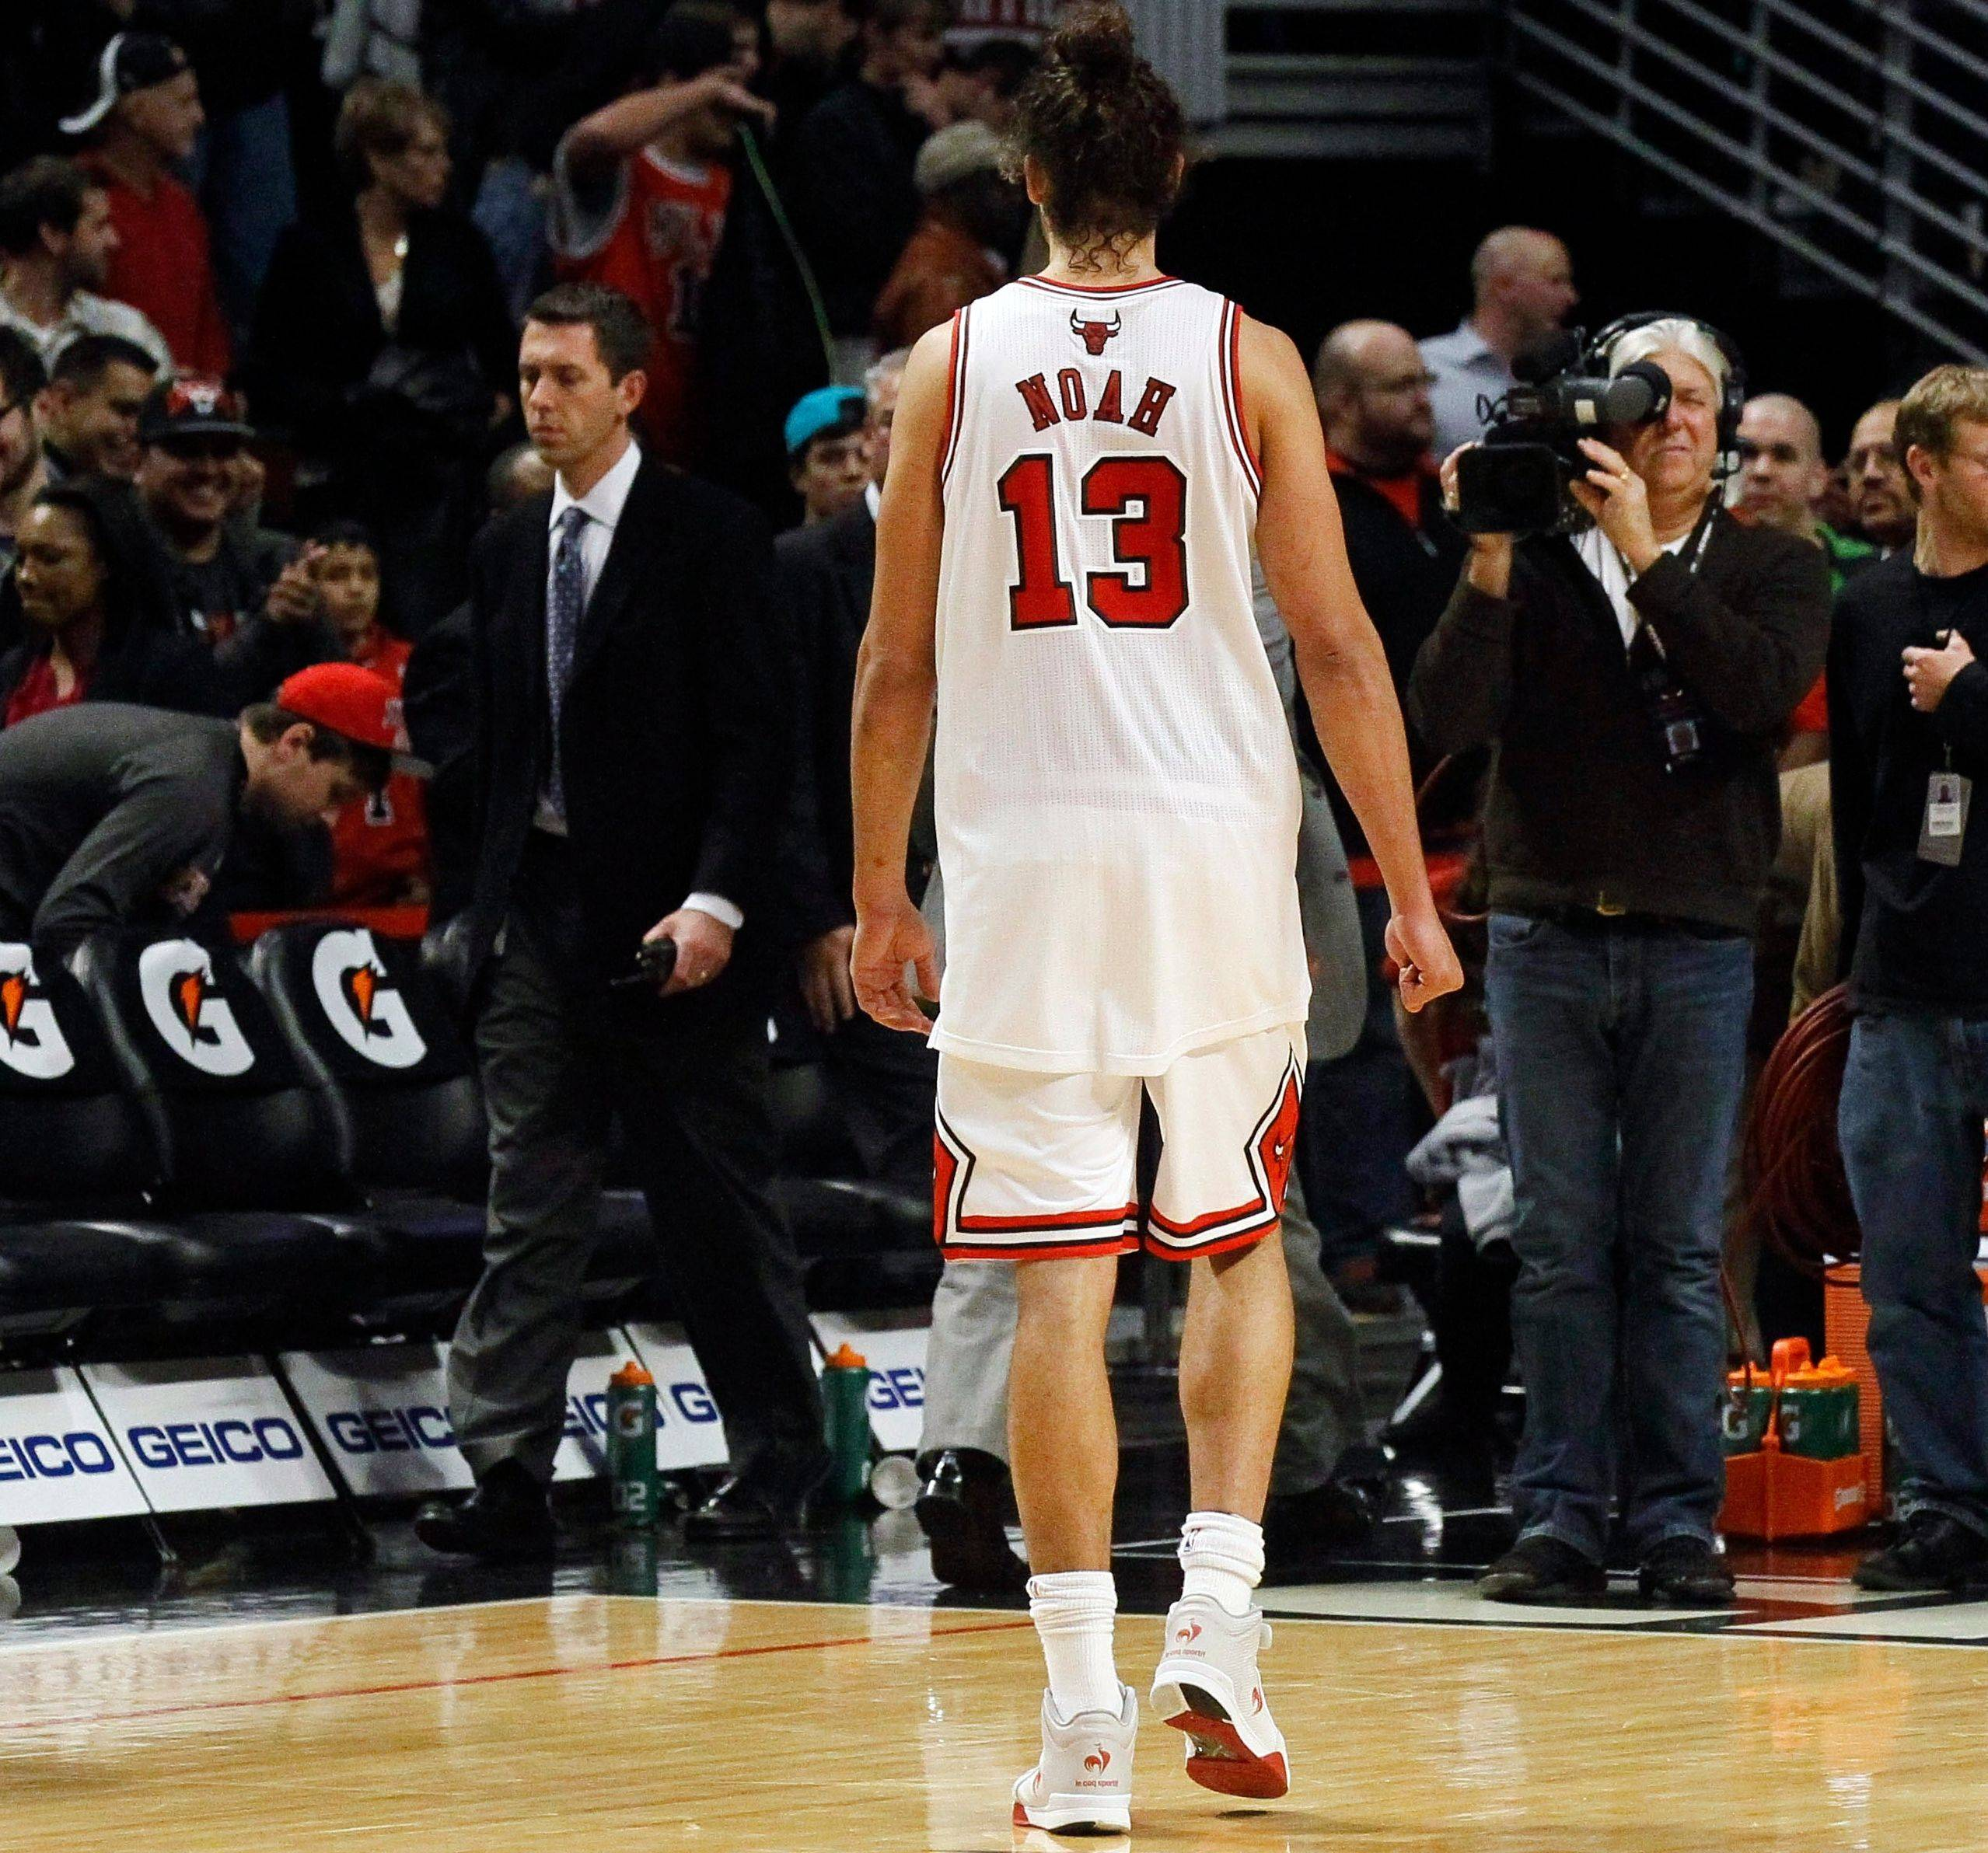 Bulls center Joakim Noah walks off the court after a 93-92 loss to Milwaukee on Monday.